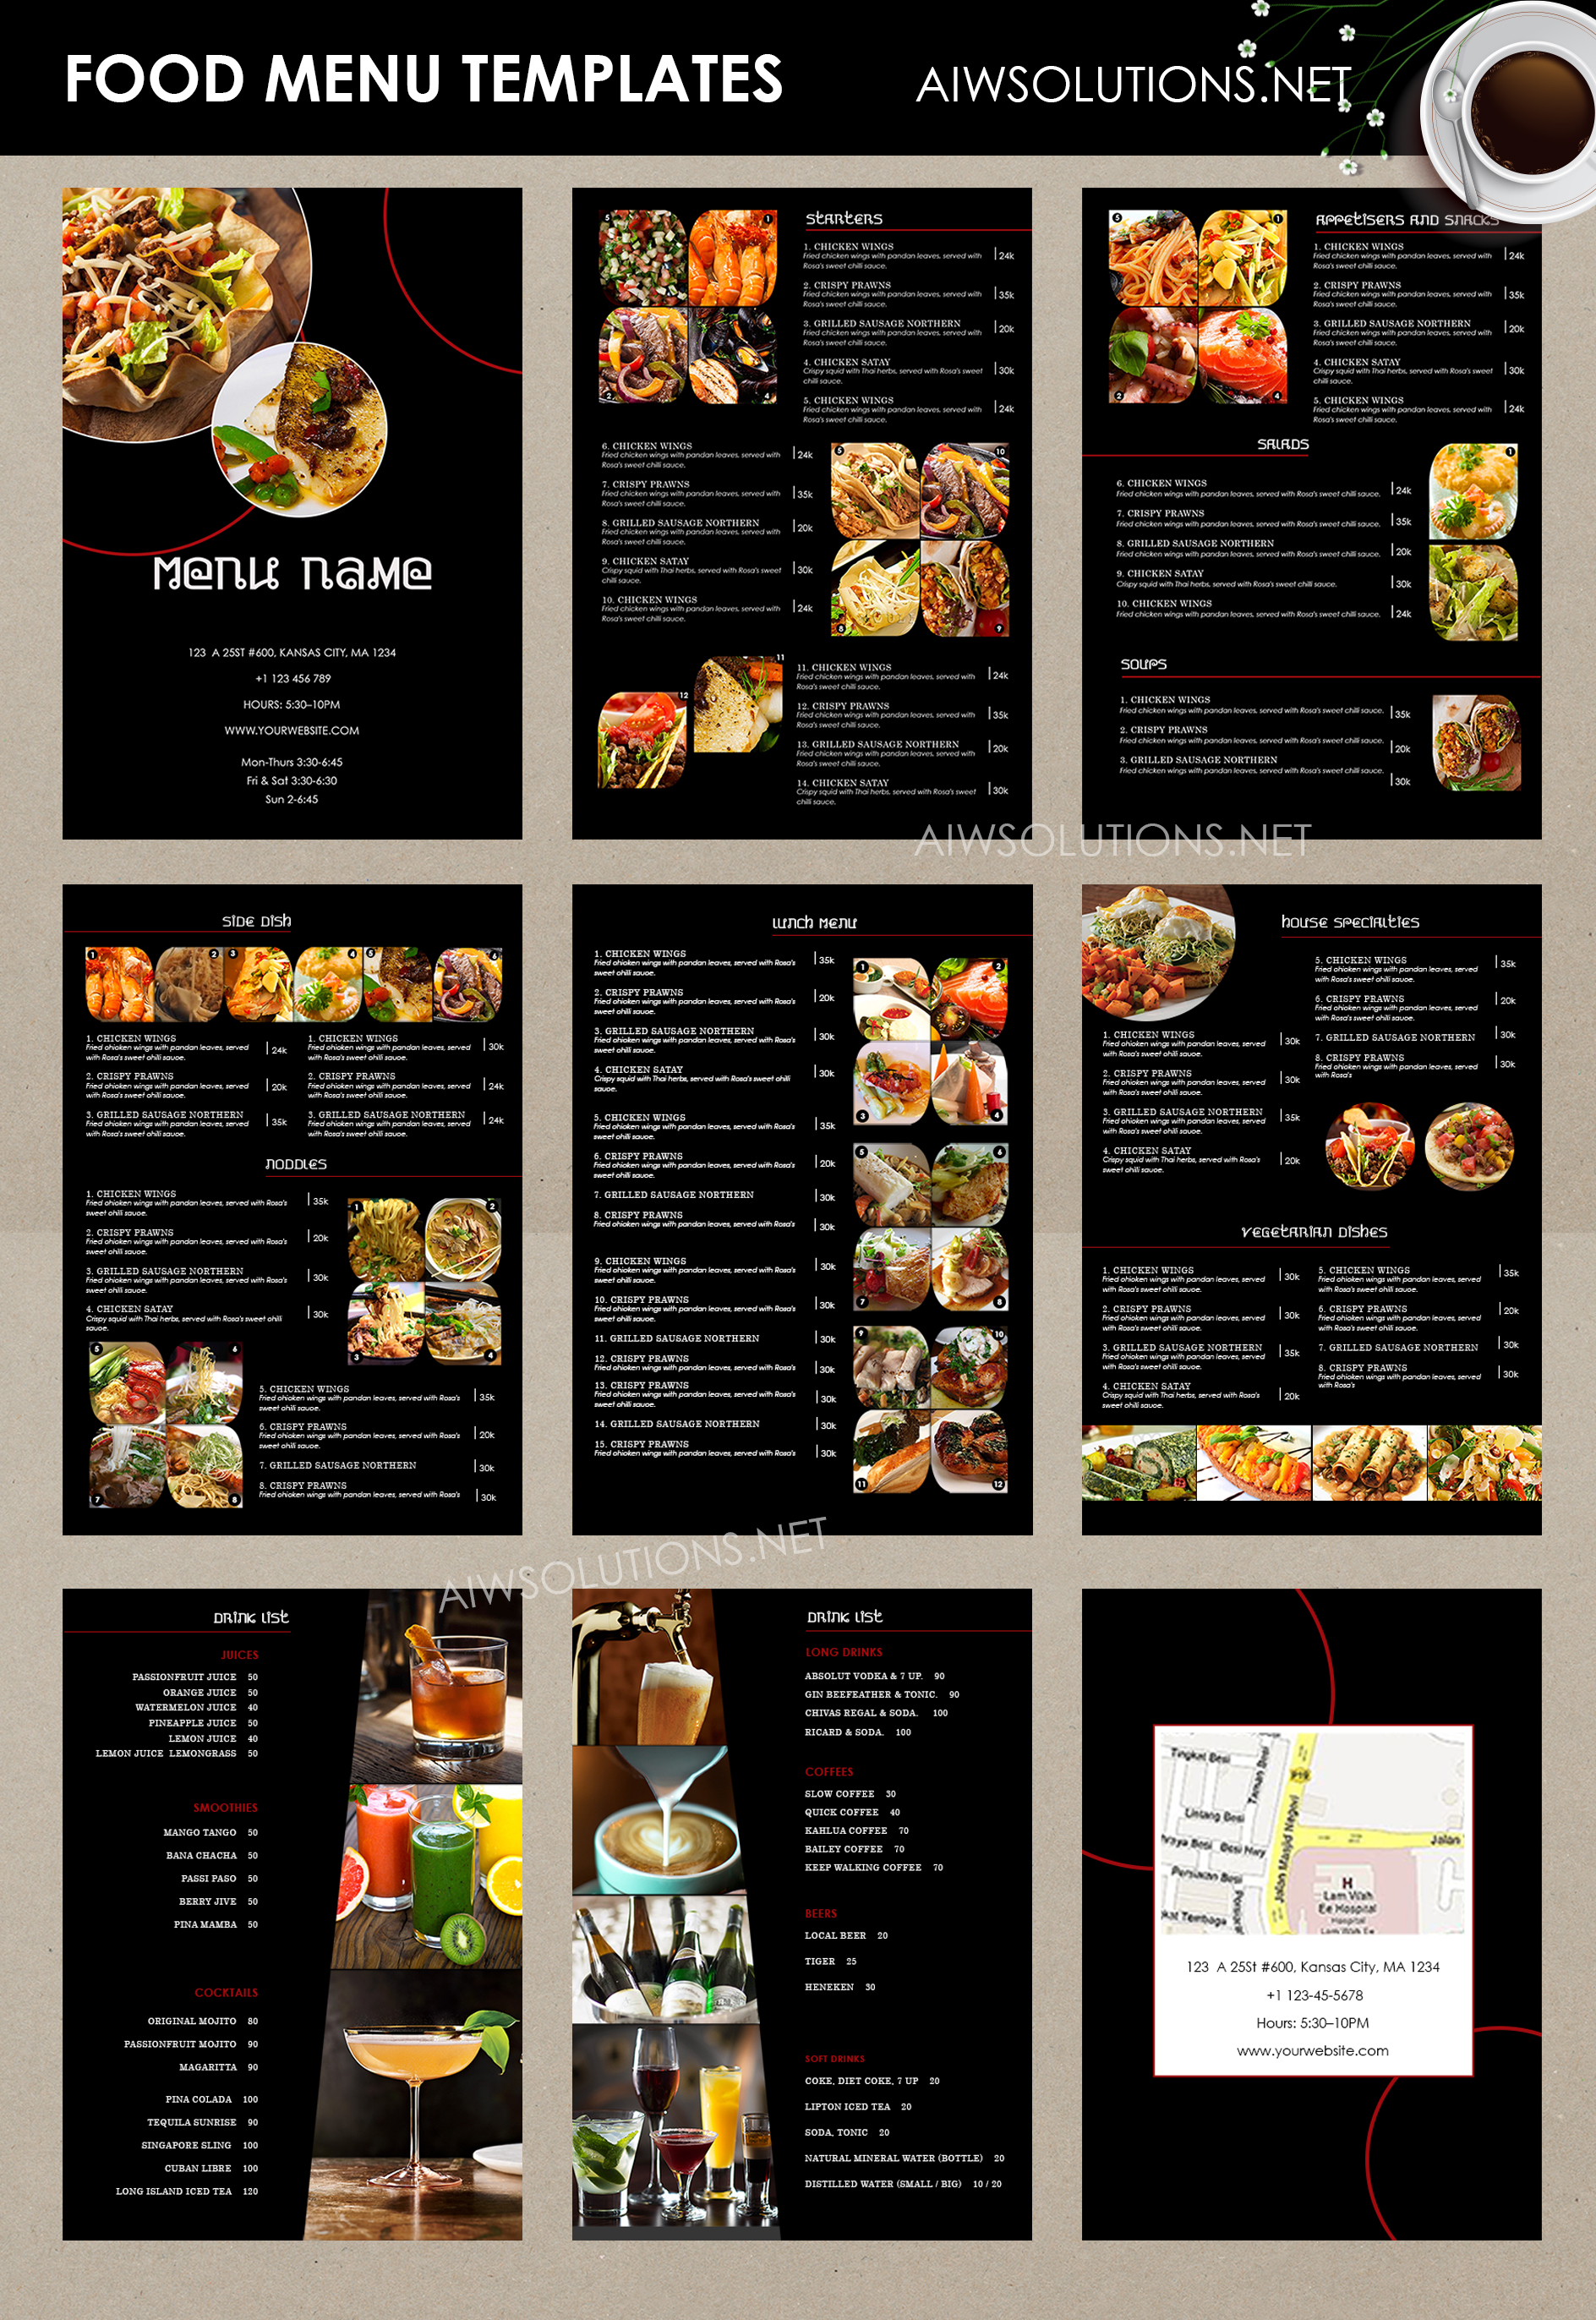 Design Templates Menu Templates Wedding Menu Food Menu bar – Food Menu Template